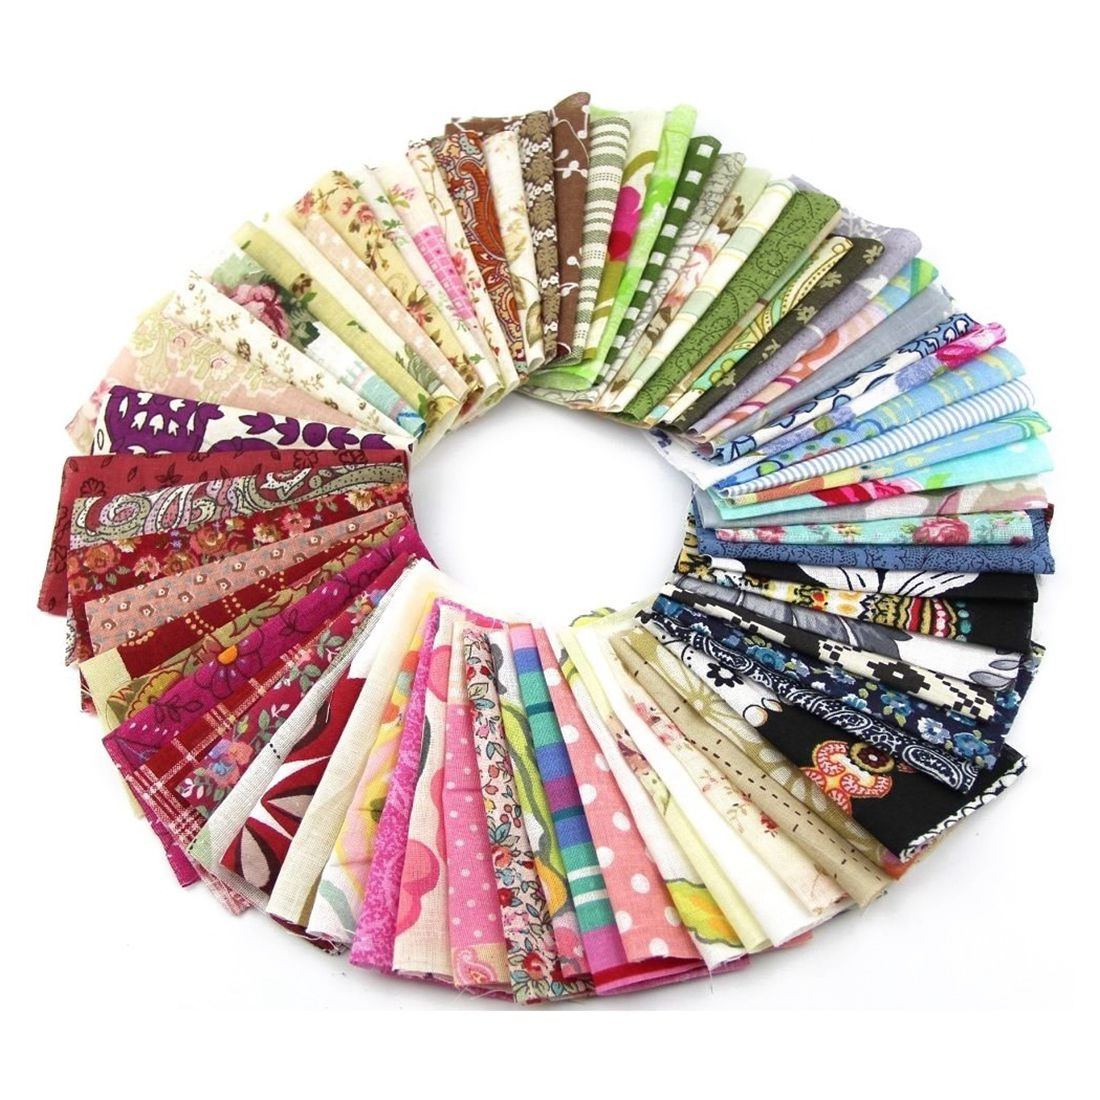 50Pcs Fabric Patchwork Craft Cotton Material Batiks Mixed Squares Bundle DIY Sewing Quilting Fat Quarters Material Tissue in Fabric from Home Garden